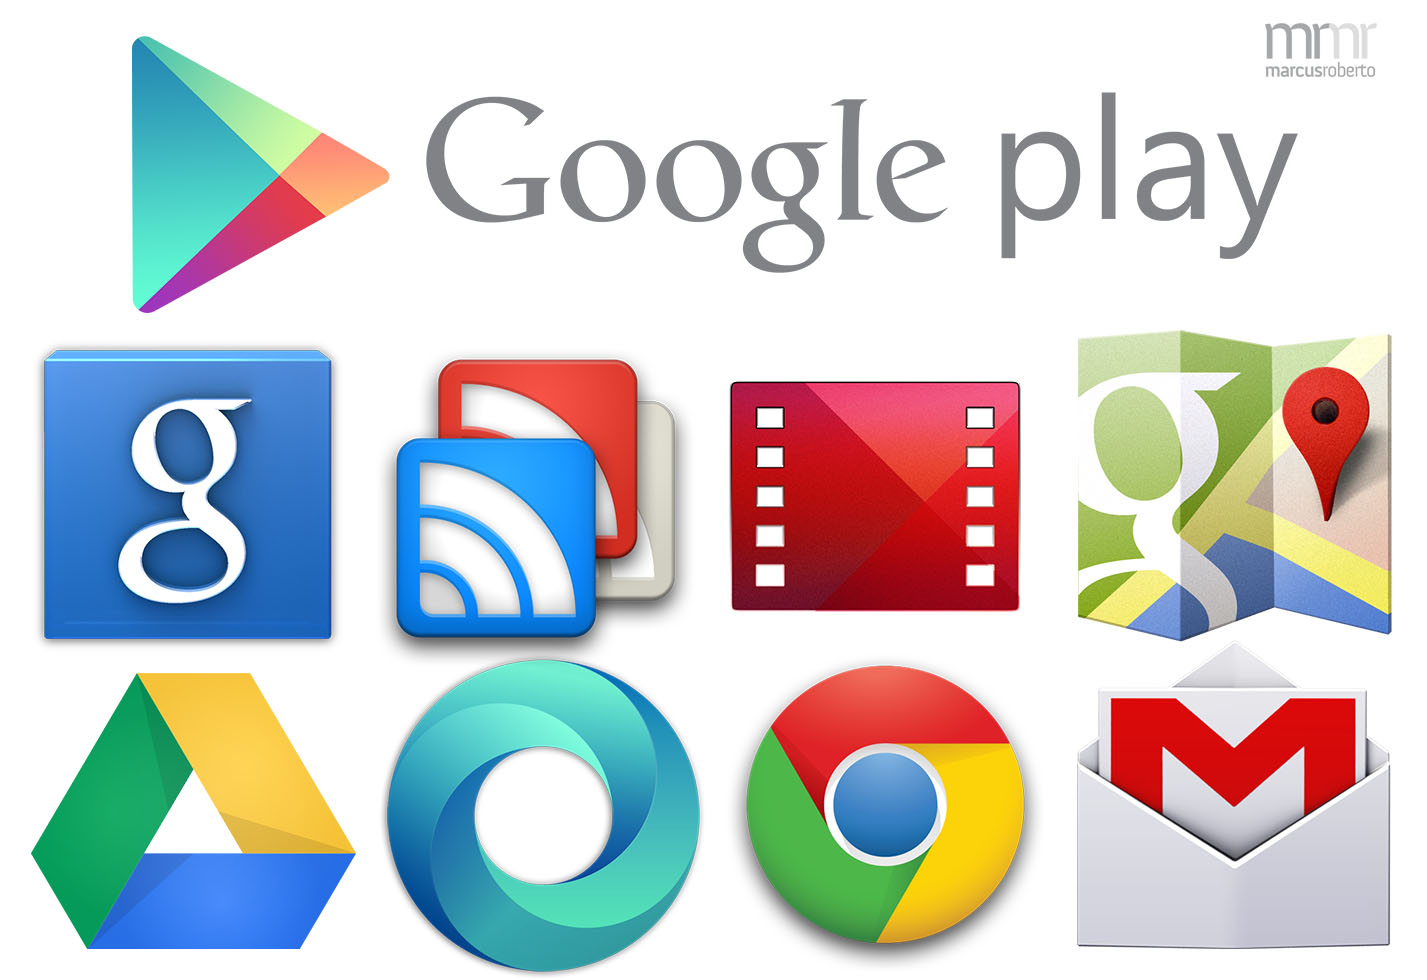 google play icons by marcus roberto on deviantart